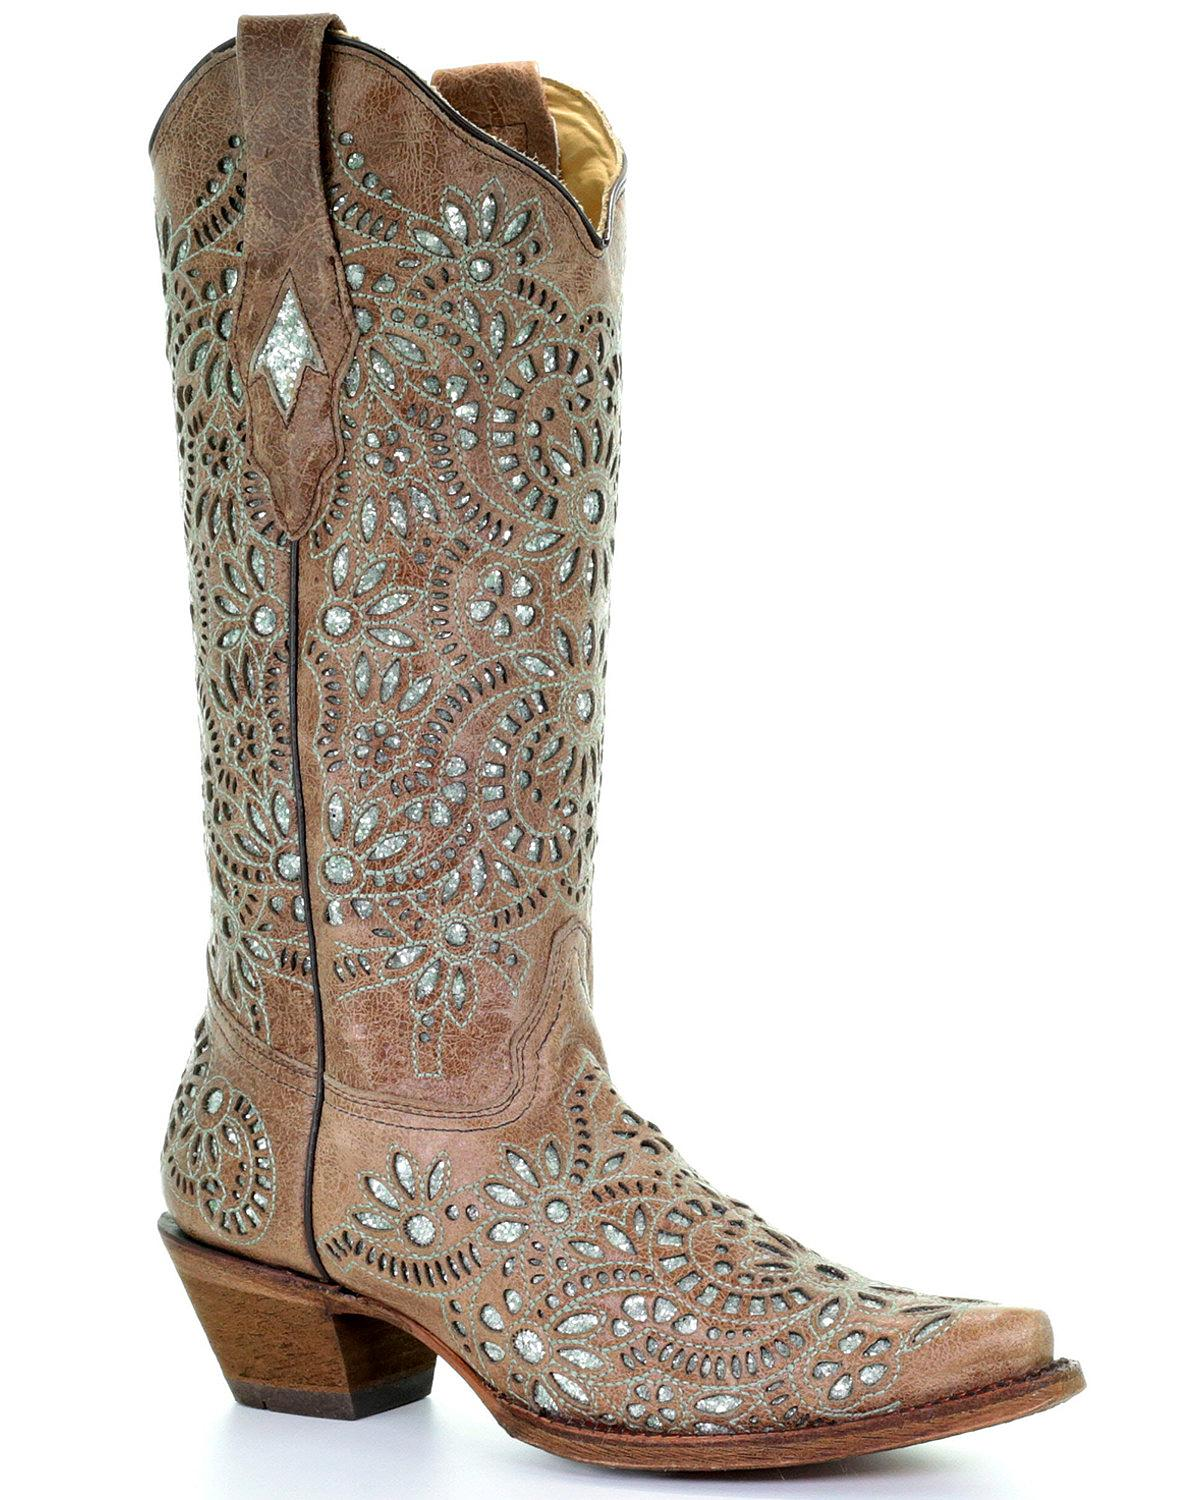 7dc2de60f49 Details about Corral Women's Glitter Inlay and Embroidered Cowgirl Boot -  Snip Toe - A3352